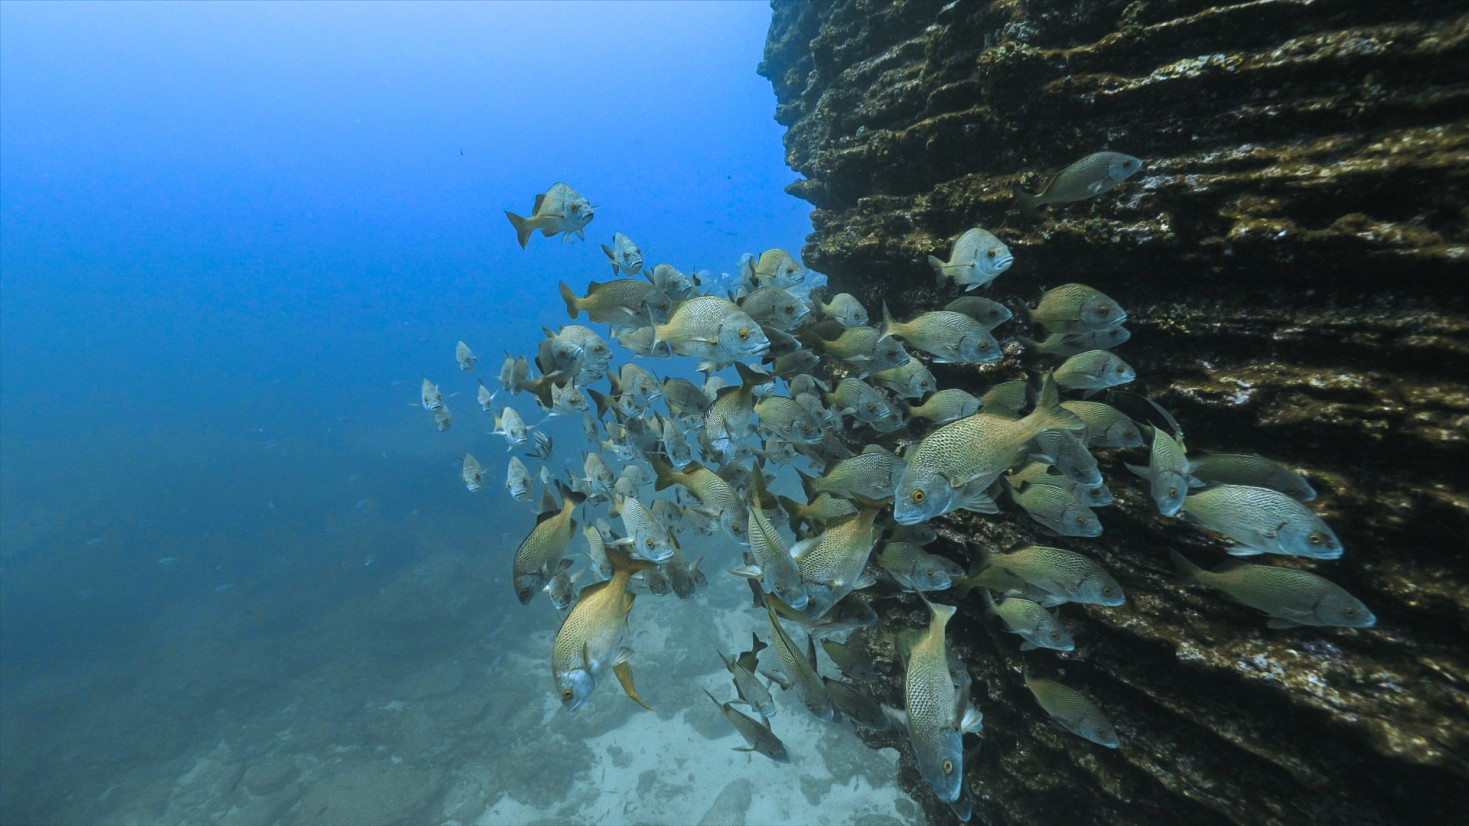 fish schooling by wall